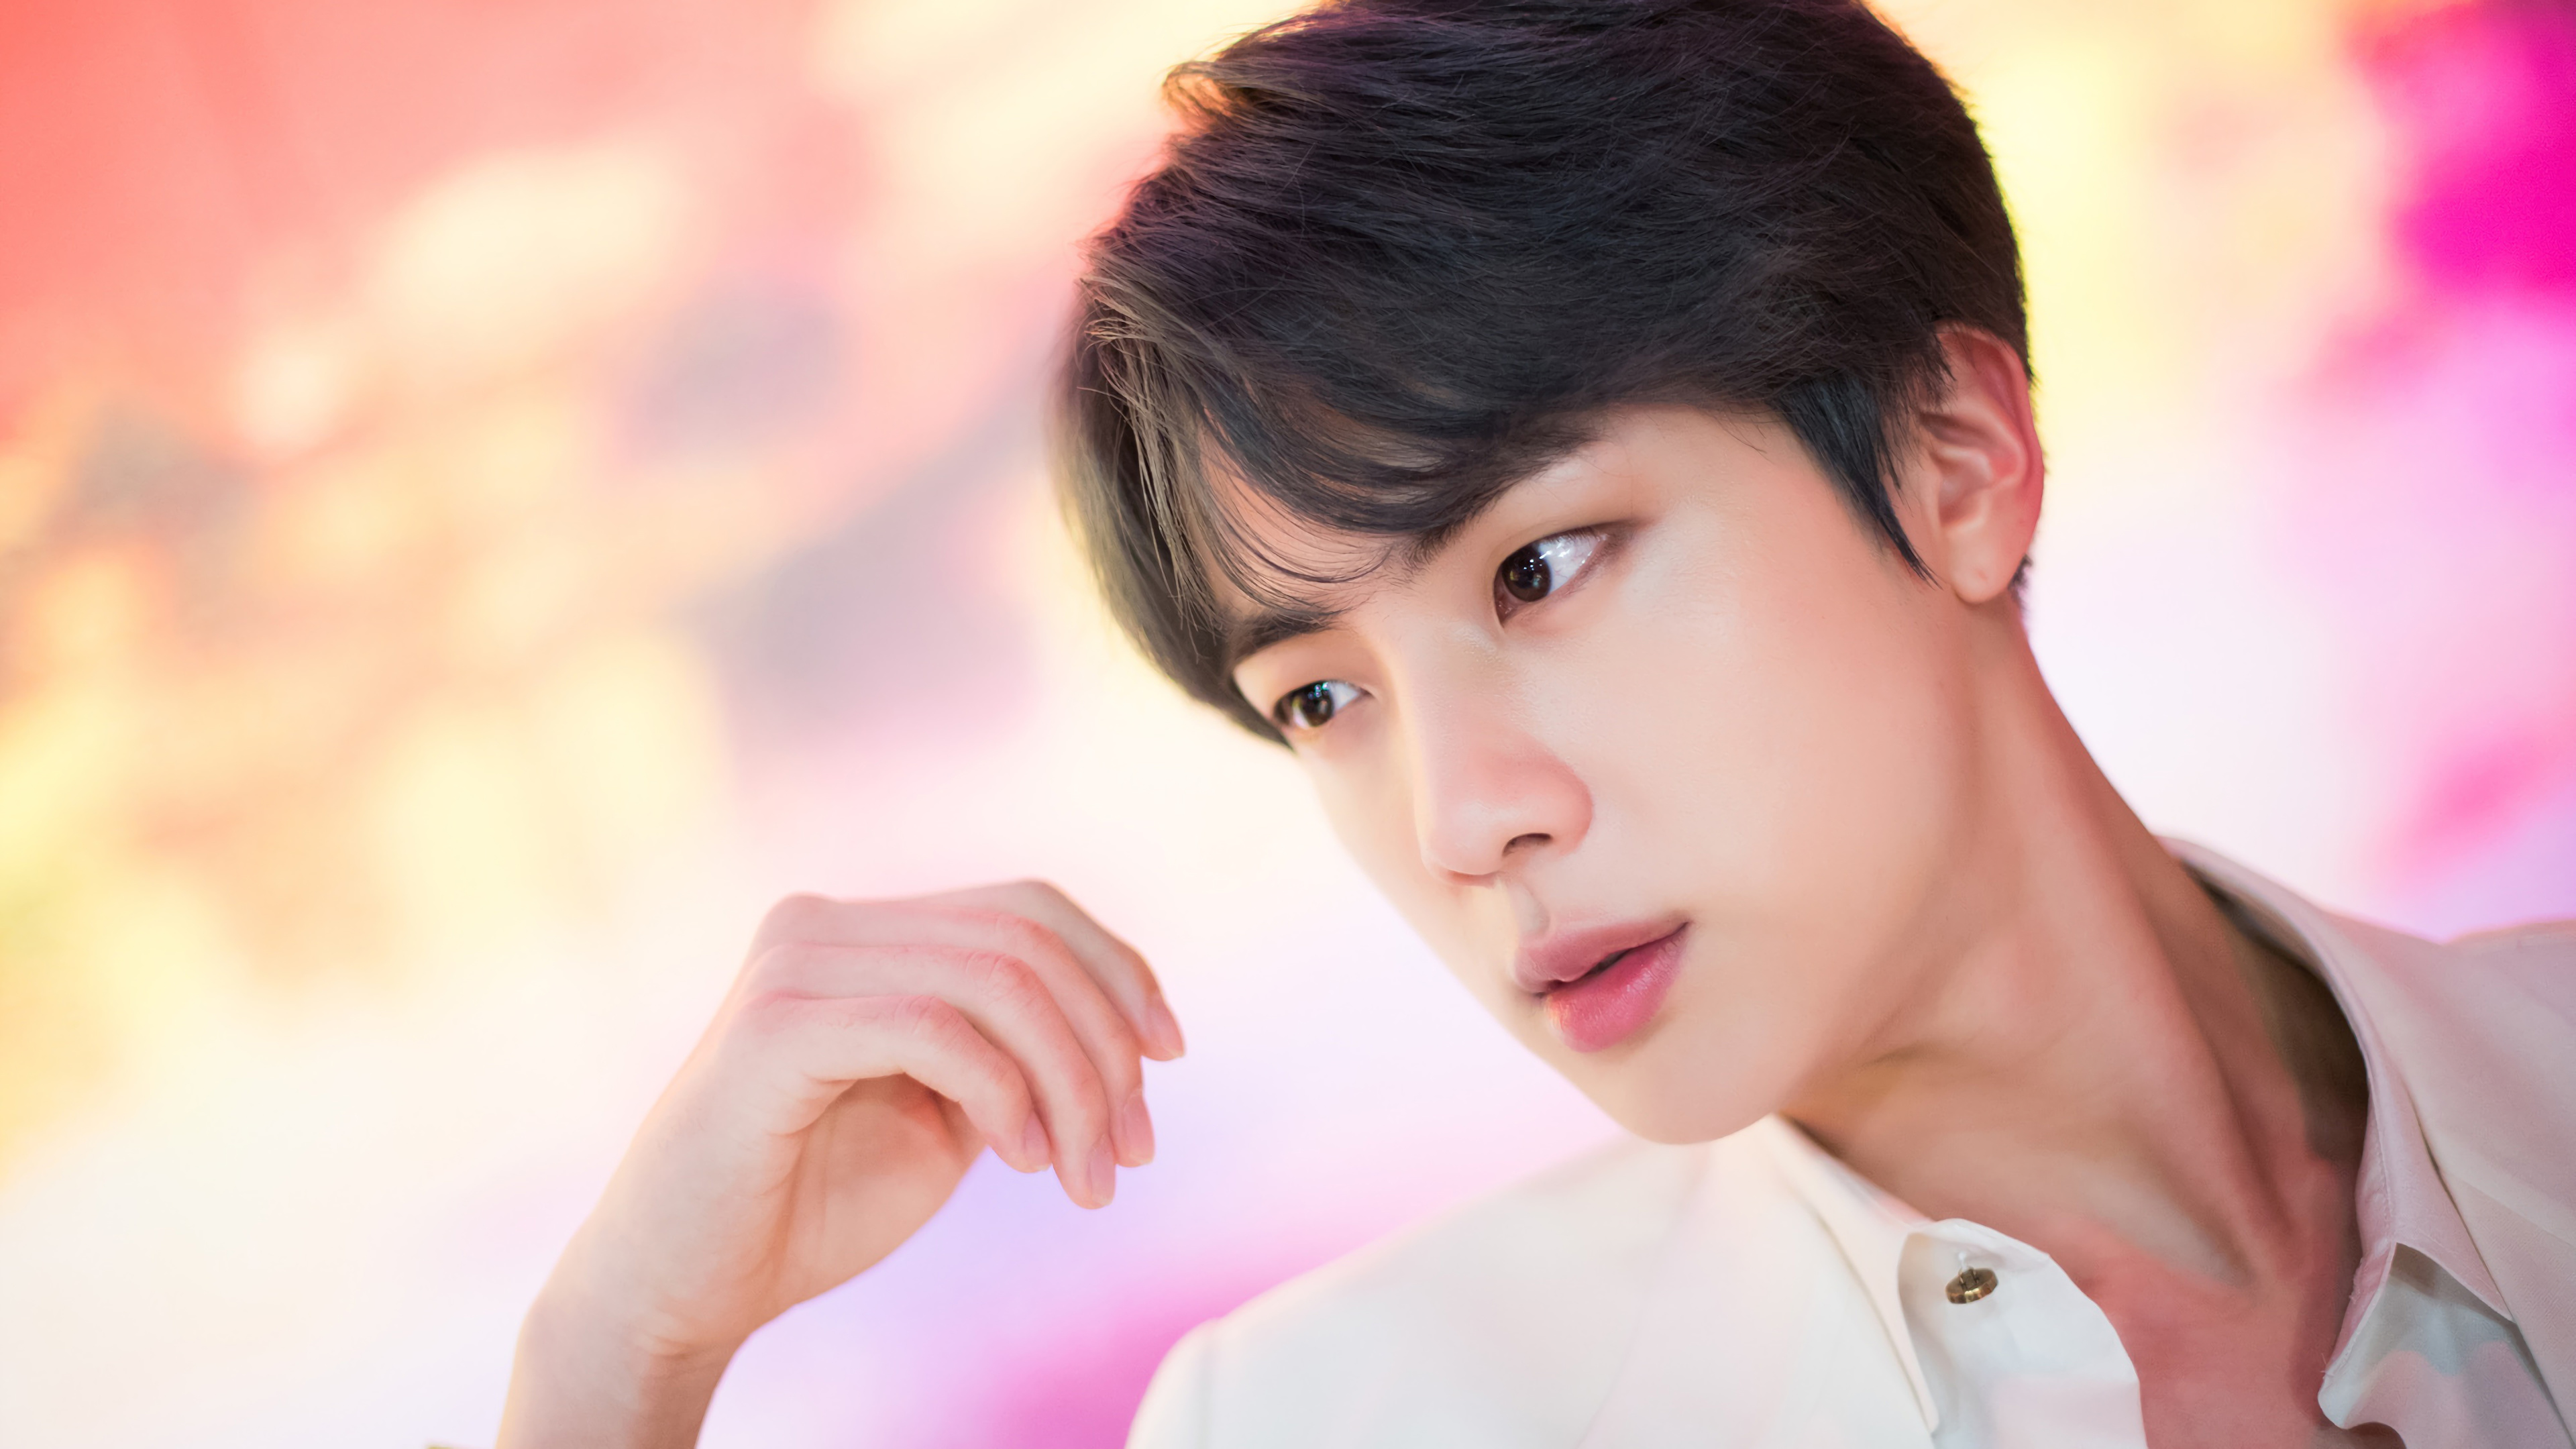 jin bts boy with luv uhdpaper.com 4K 112